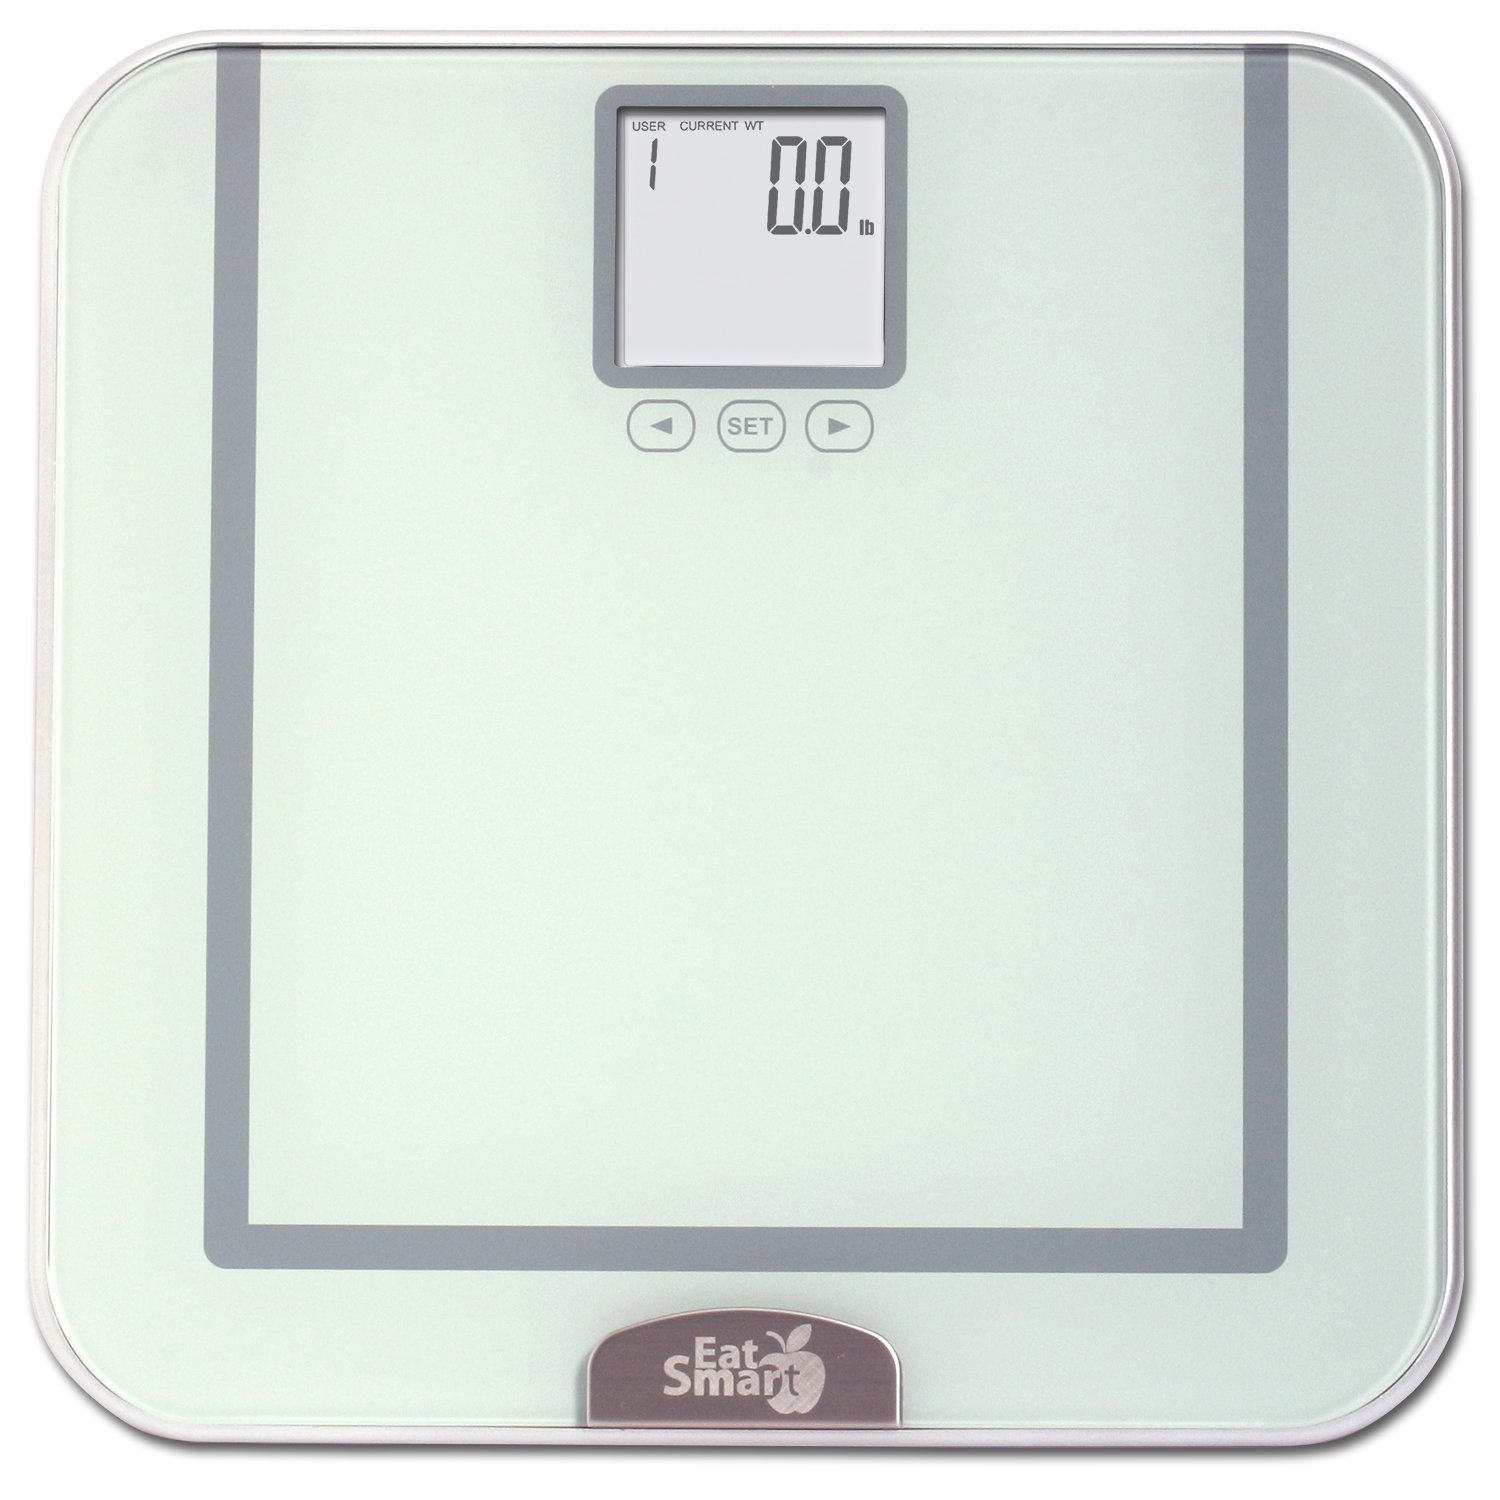 Amazoncom EatSmart Products Precision Tracker Digital Bathroom - Digital vs analog bathroom scale